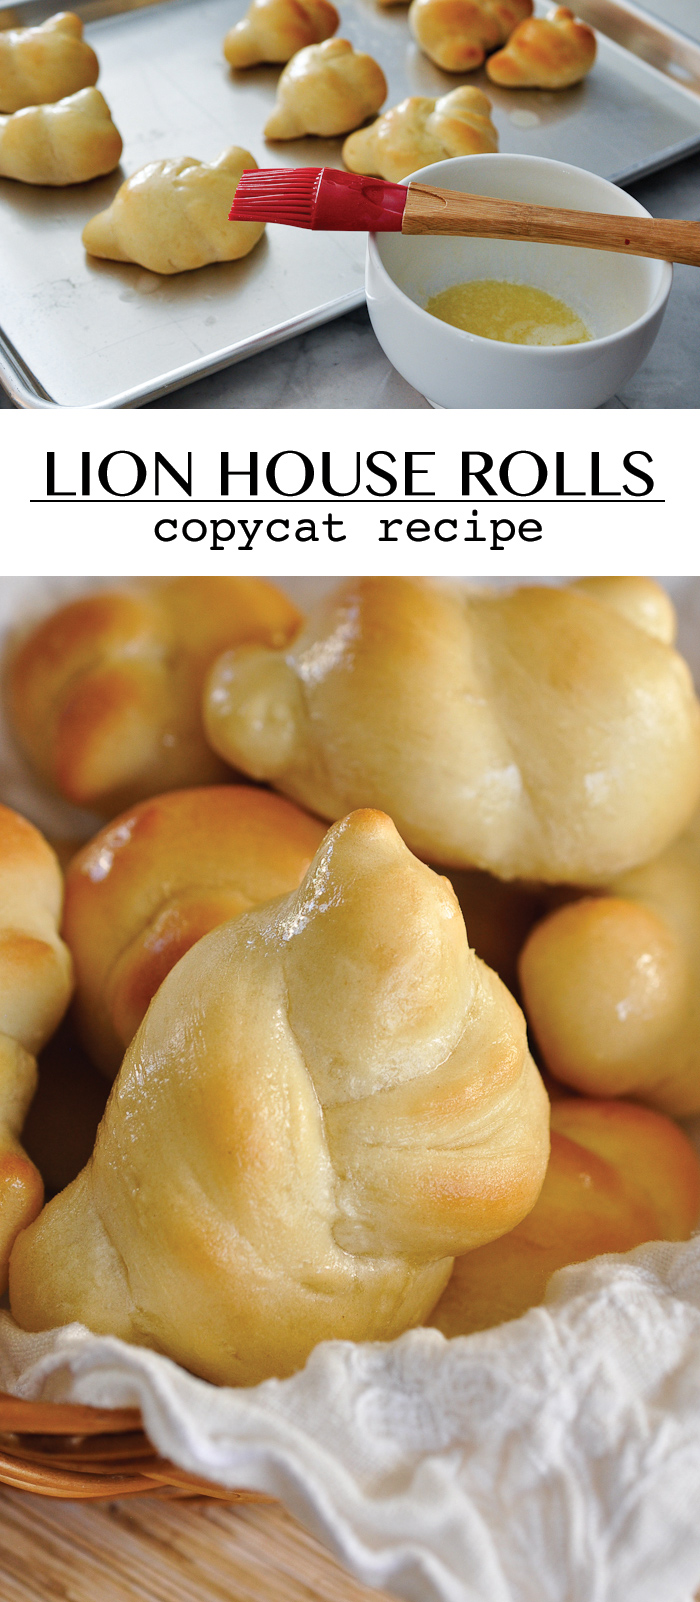 Lion House Rolls copycat recipe